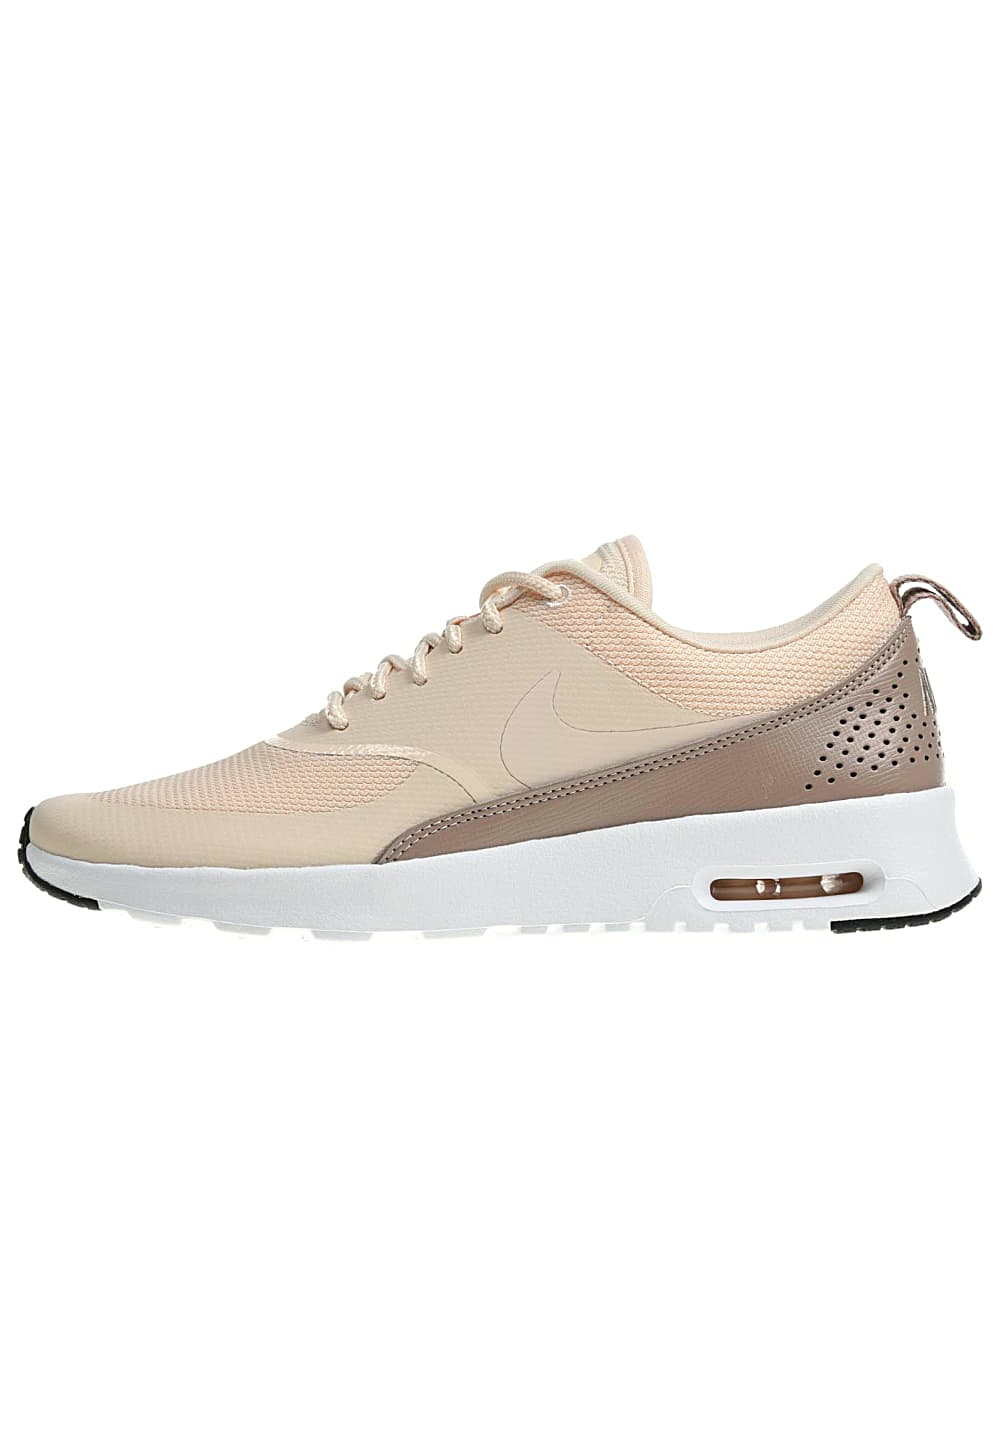 NIKE SPORTSWEAR Air Max Thea - Sneakers for Women - Beige